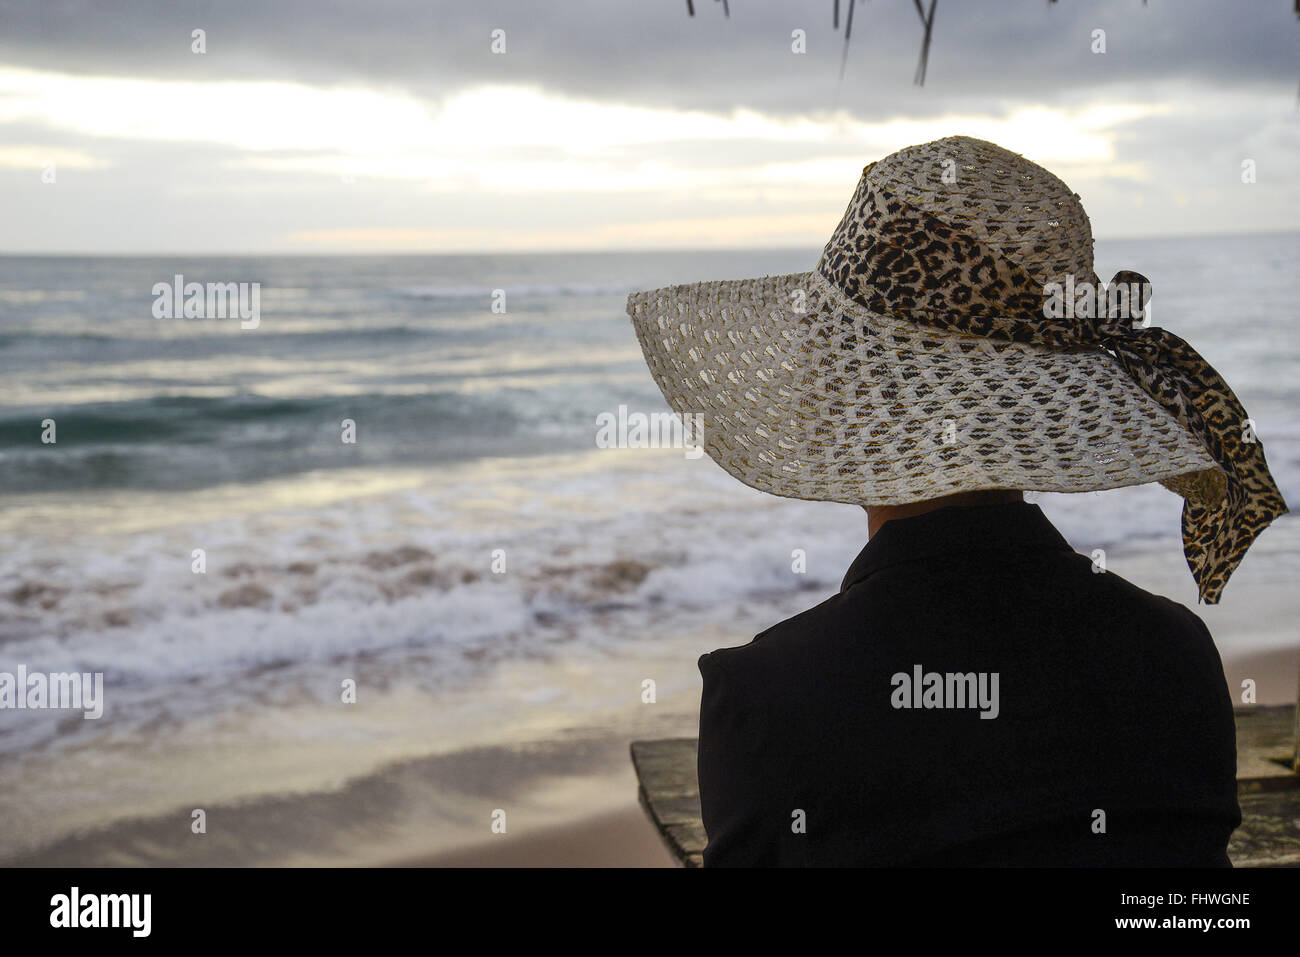 Woman with straw hat contemplating the sea in Algodoes Beach - Peninsula of Marau - Stock Image